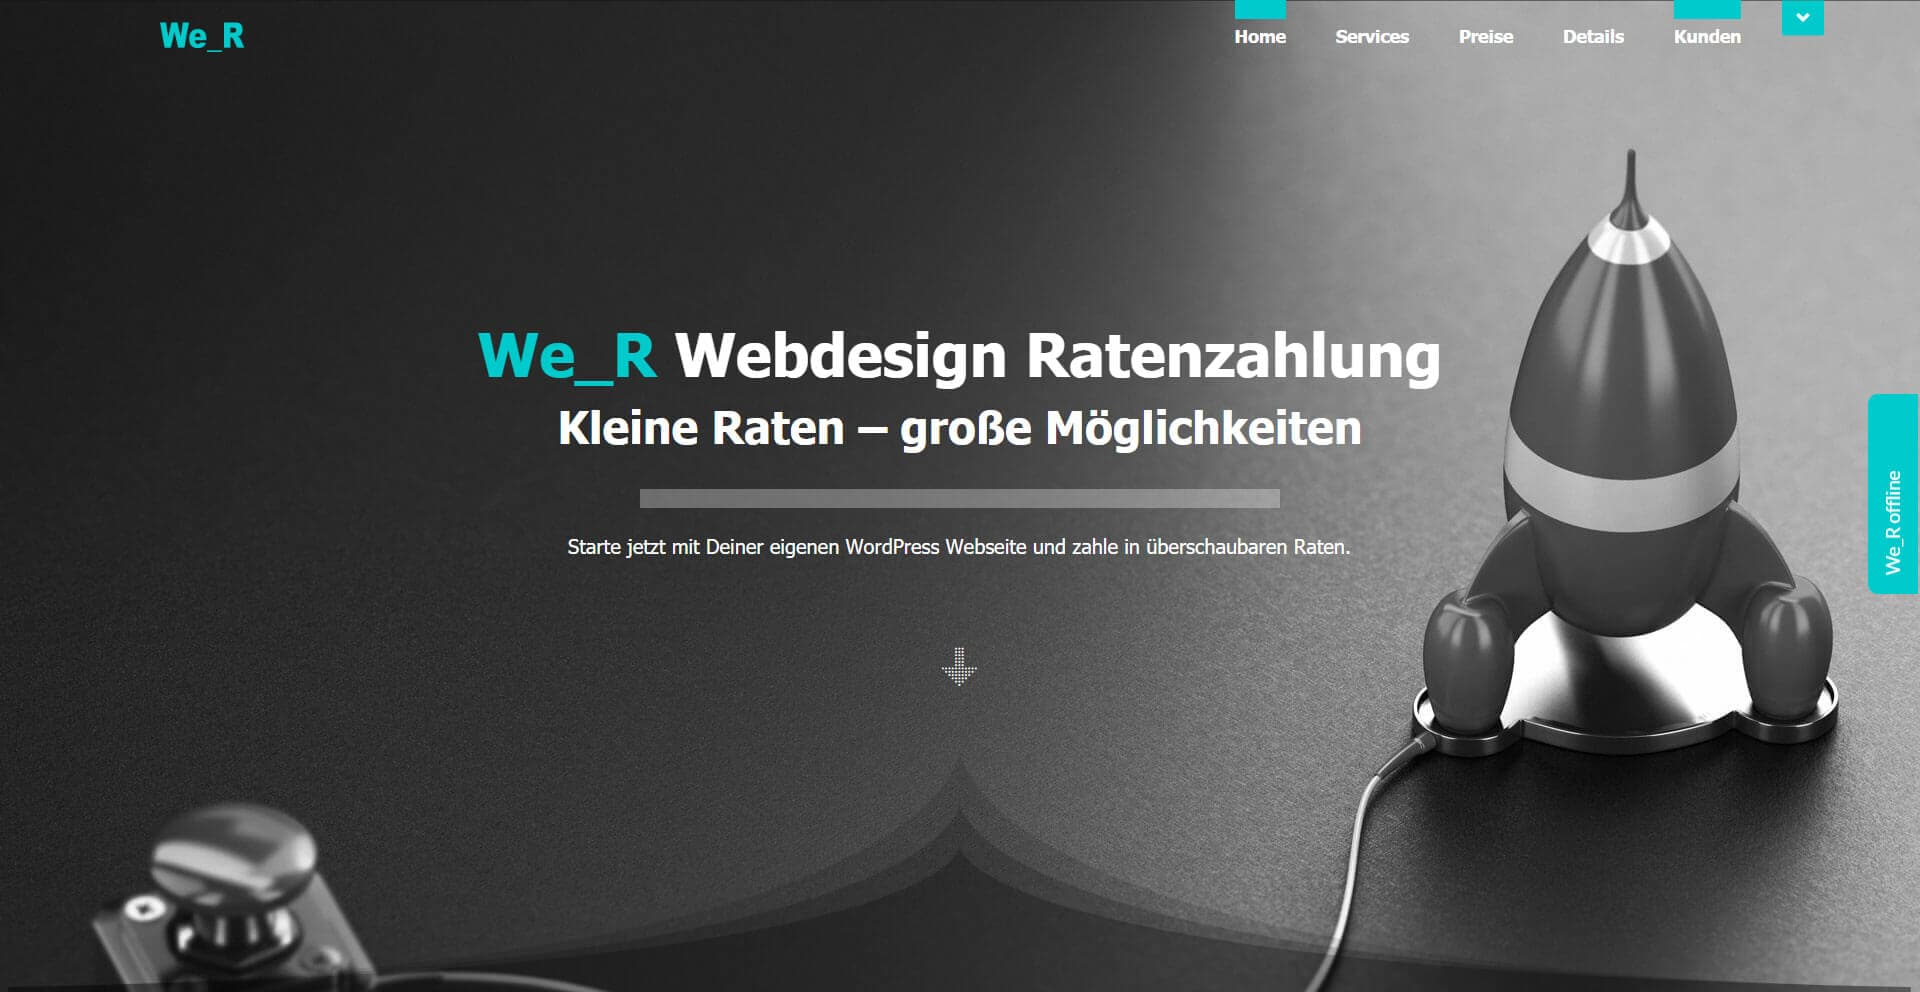 We_R Webdesign Ratenzahlung